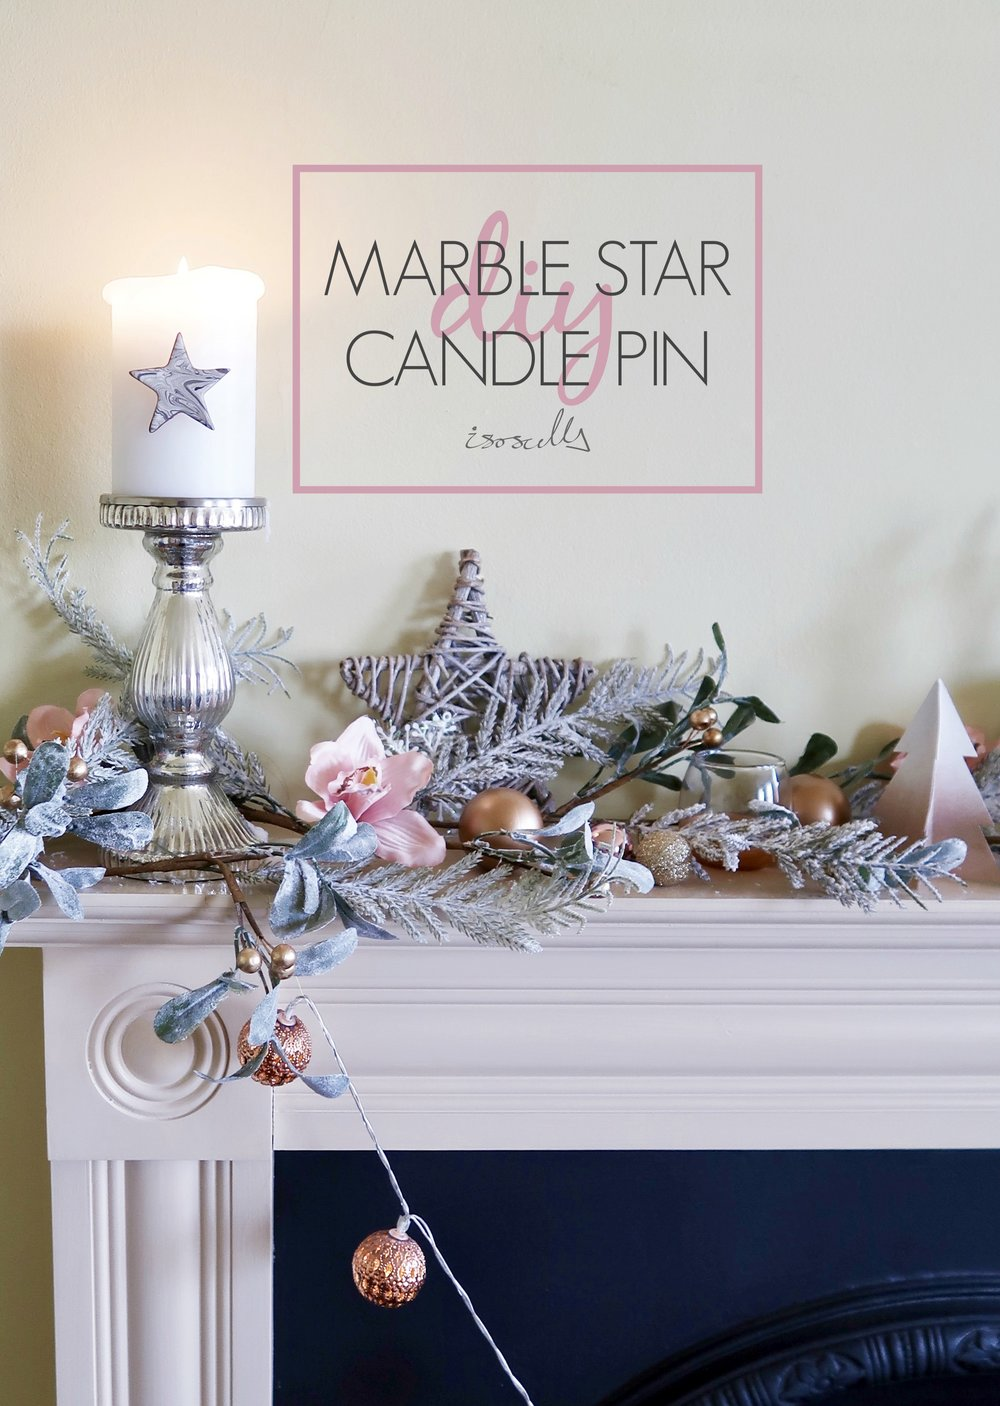 DIY Marble Star Clay Pin by Isoscella